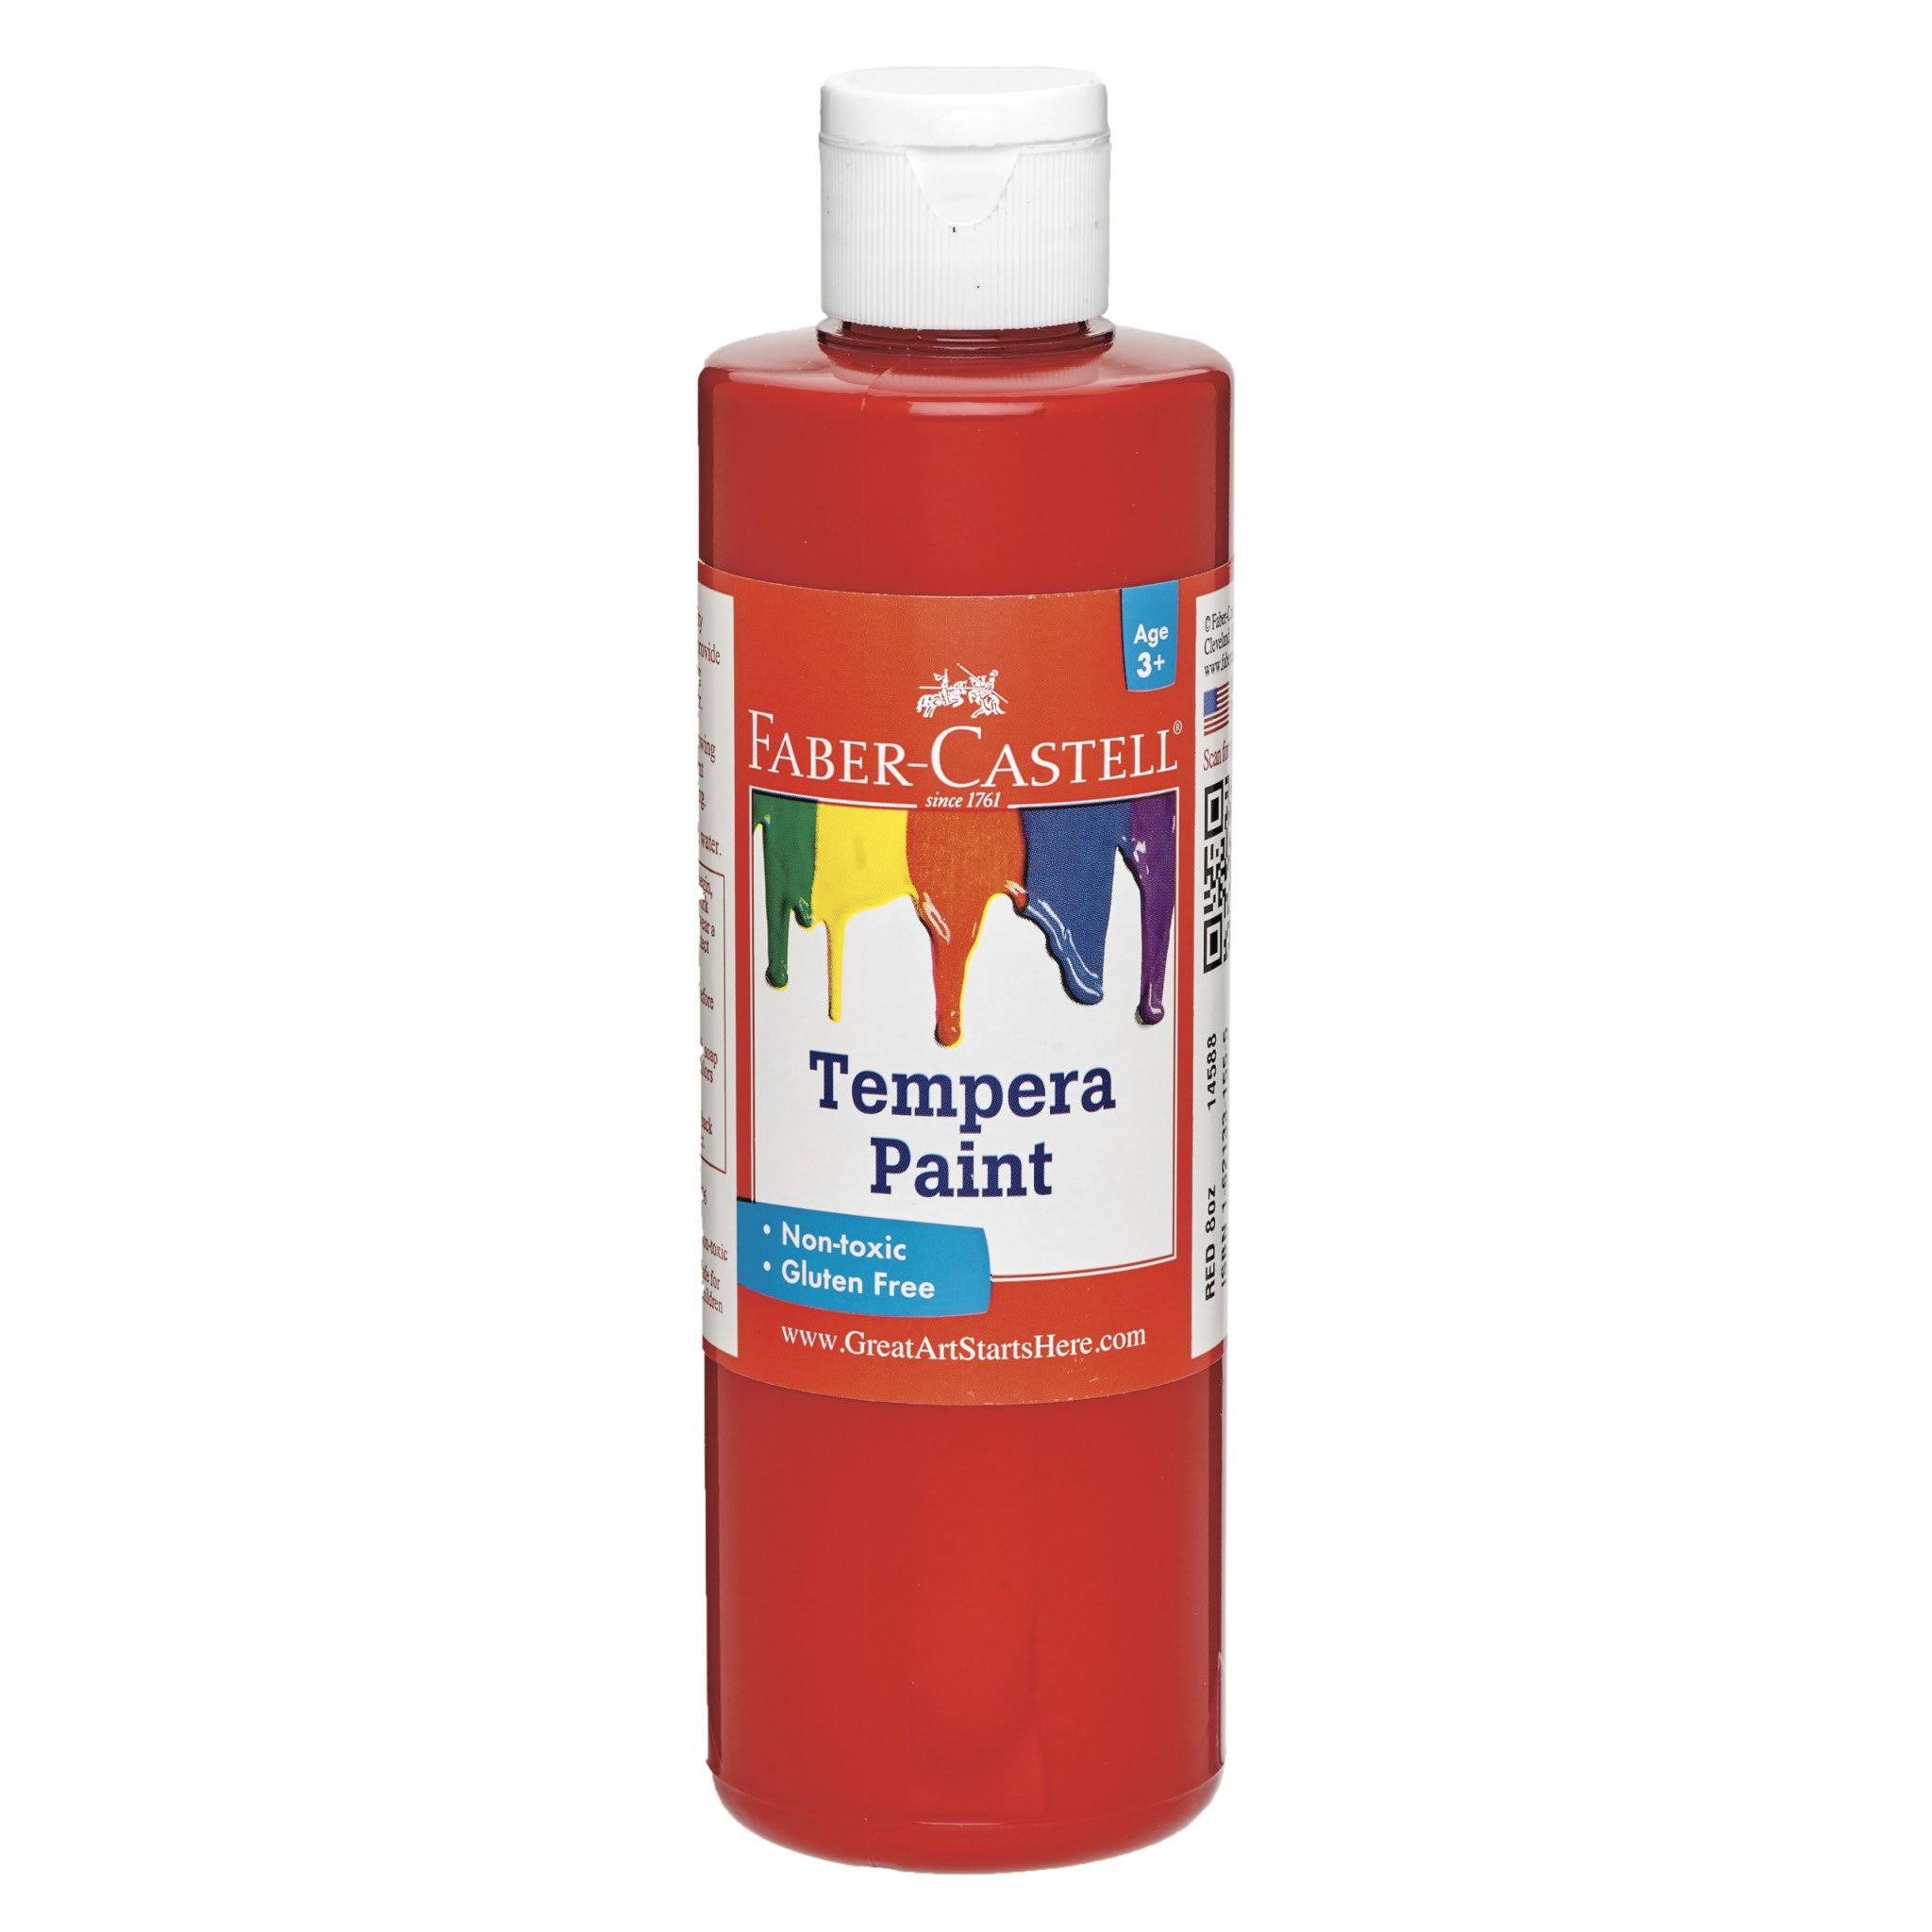 Faber-Castell Red Tempera Paint 8 oz